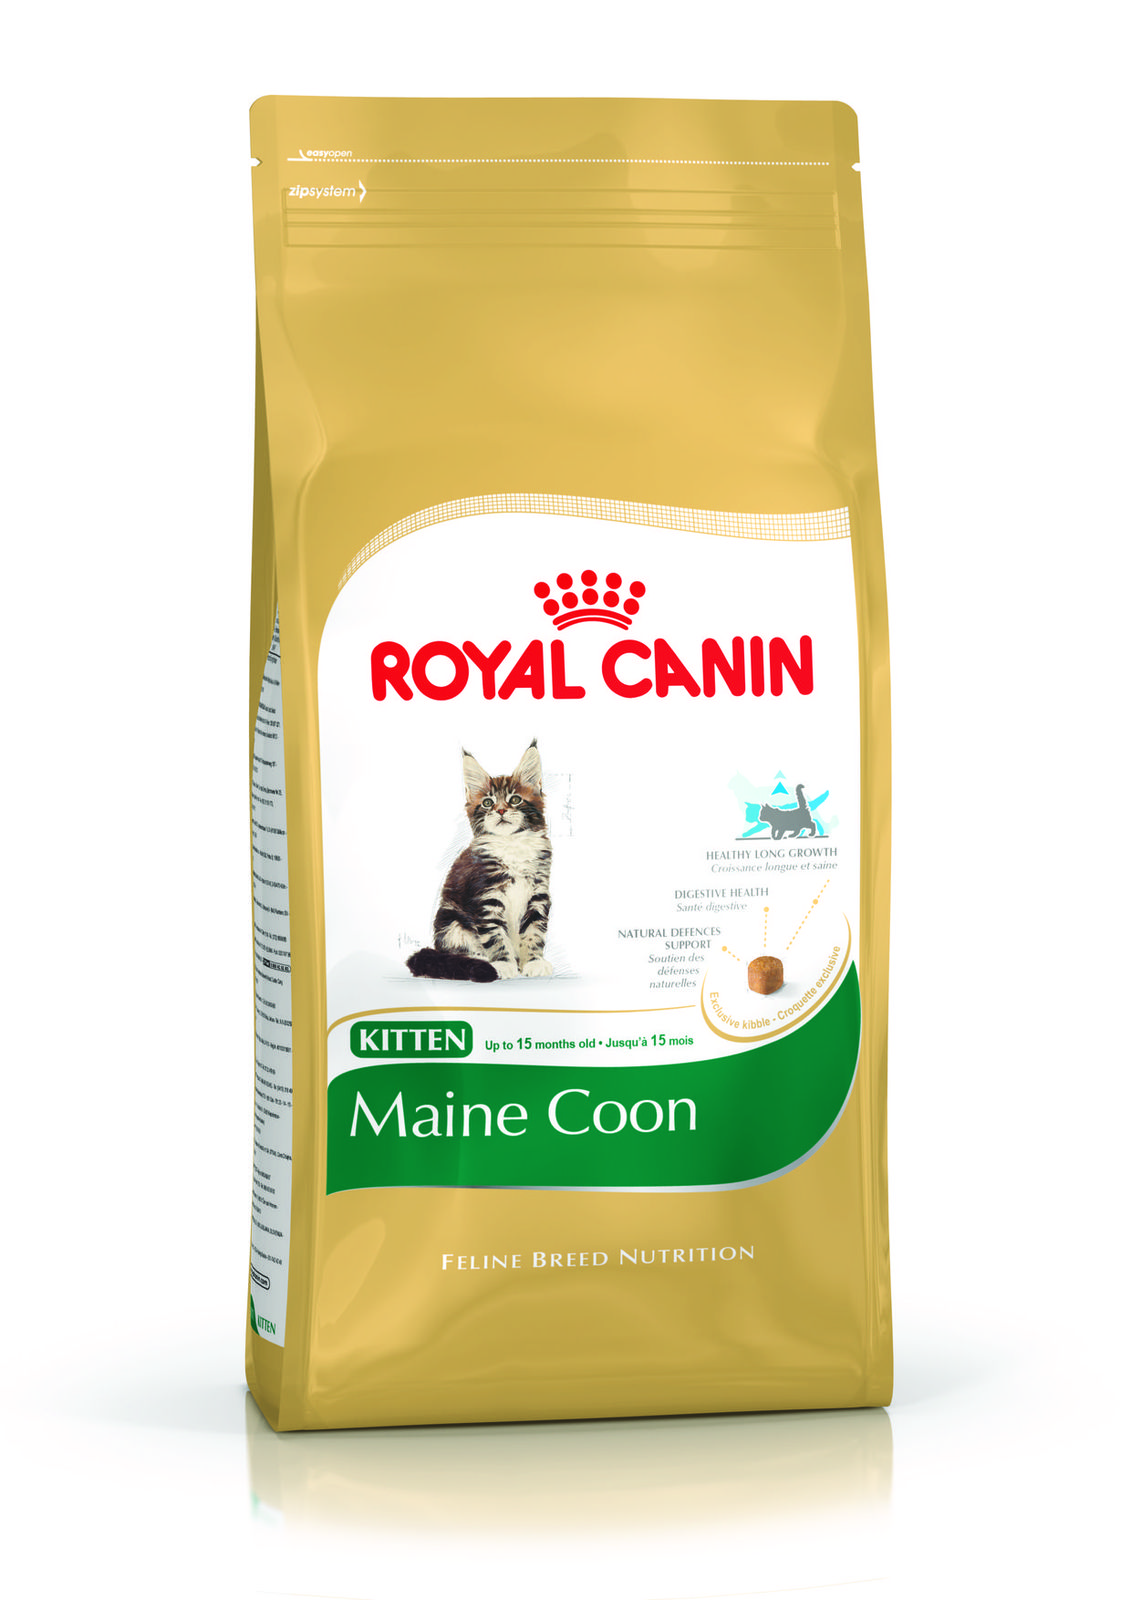 The Maine Coon kittenu0027s growth phase is exceptionally long and requires an adapted nutritional profile and  sc 1 st  Pinterest & The Maine Coon kittenu0027s growth phase is exceptionally long and ... pezcame.com